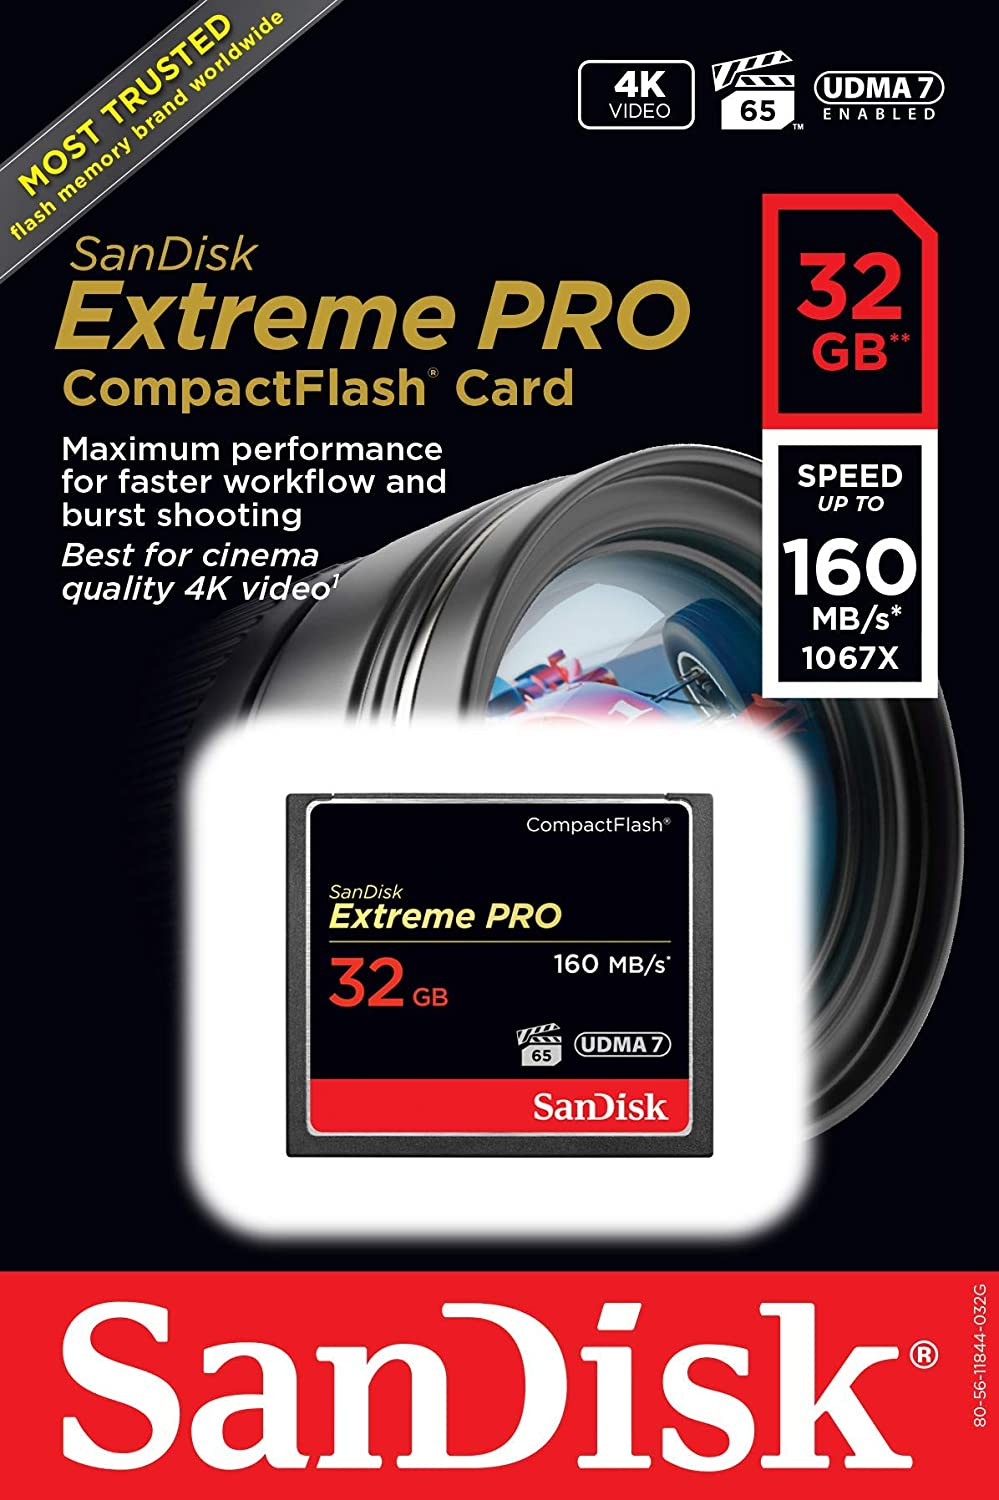 SanDisk Extreme PRO 32GB CompactFlash Memory Card UDMA 7 Speed Up To 160MB//s SDCFXPS-032G-X46